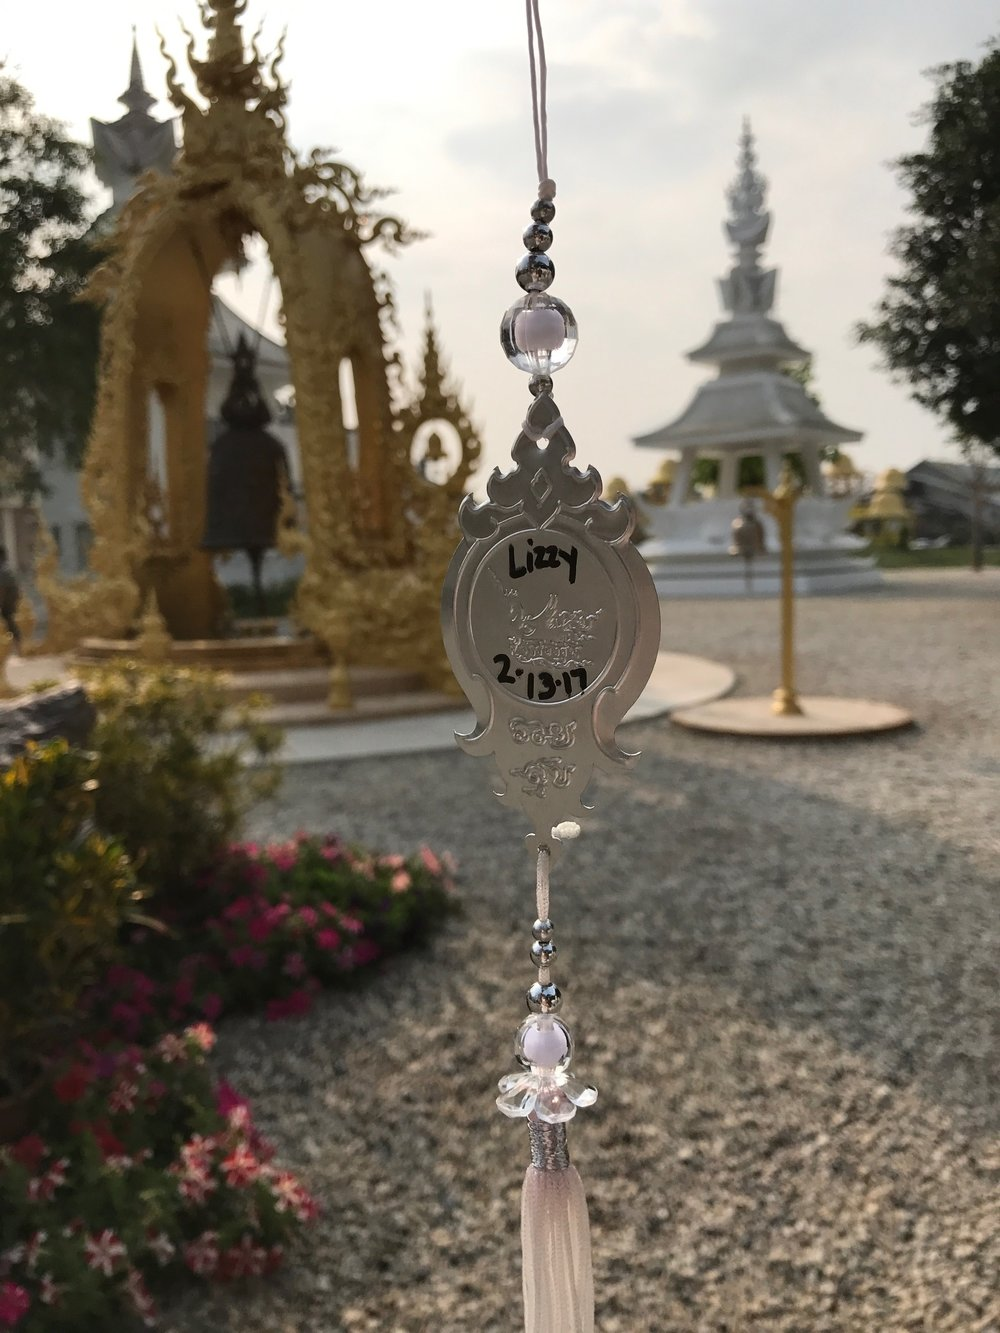 Make a wish that'll live in the White Temple